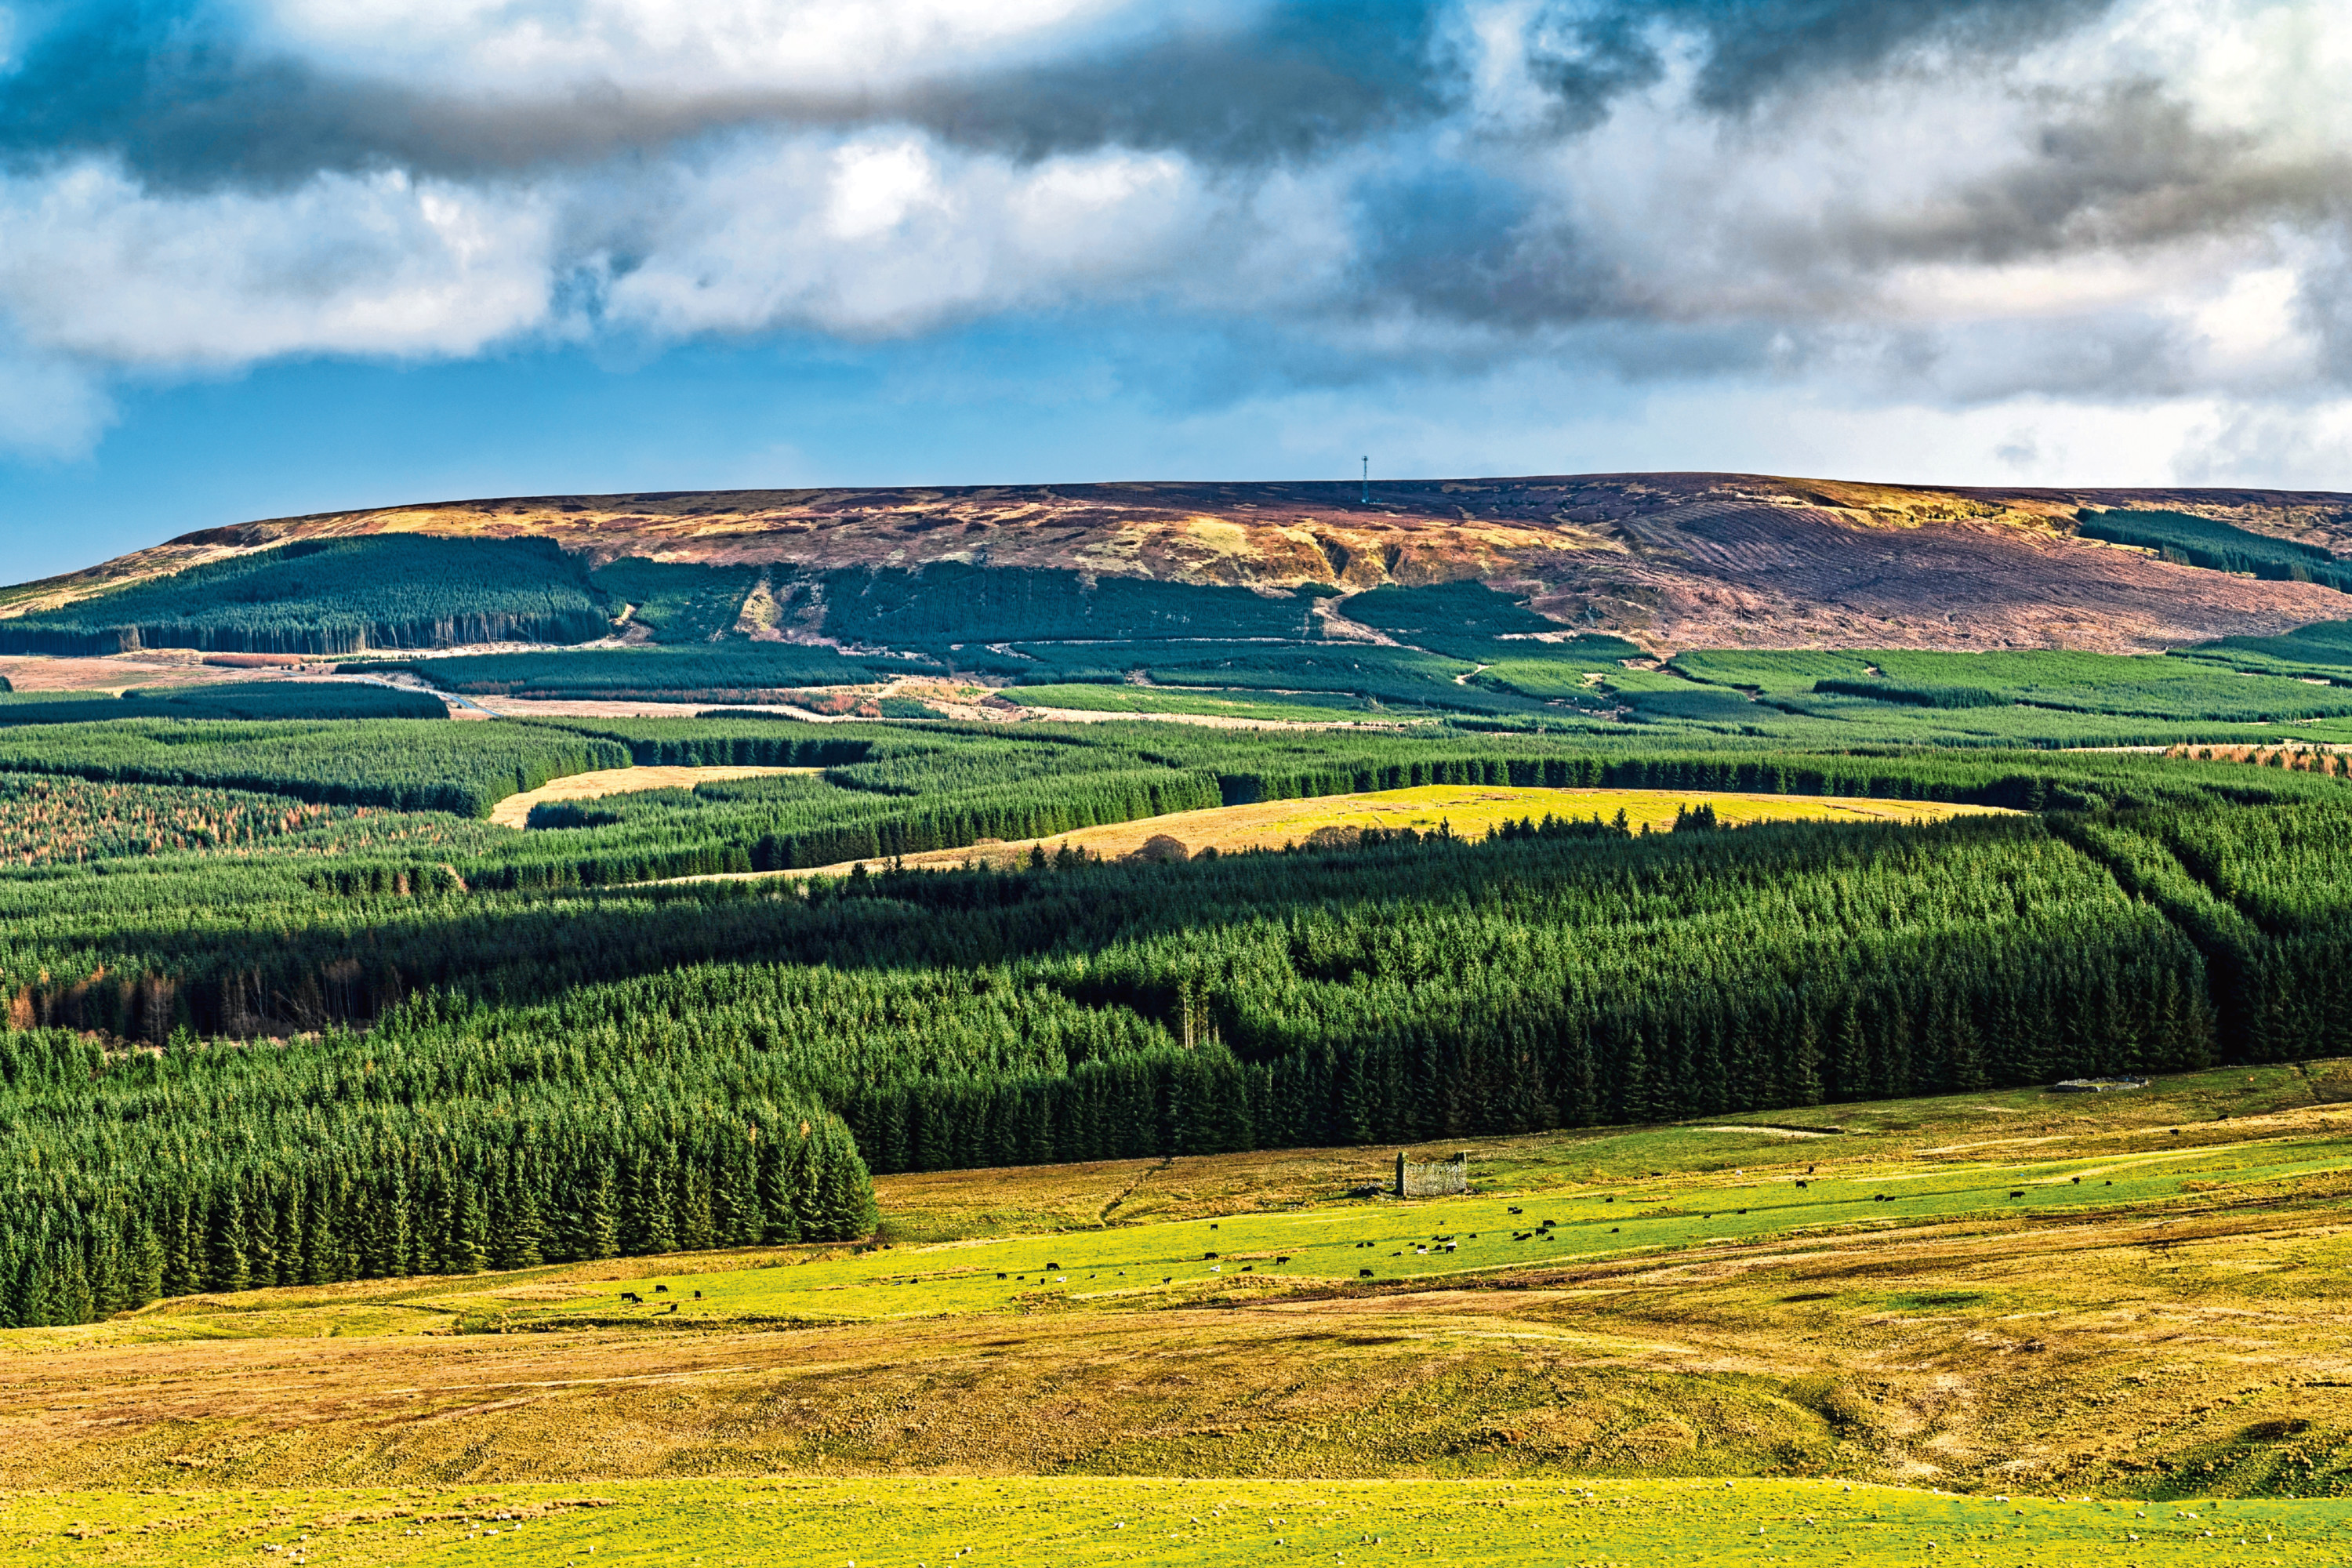 The boom in forestry interest is related to attractive government planting grants and the value of commercial forestry plantations.